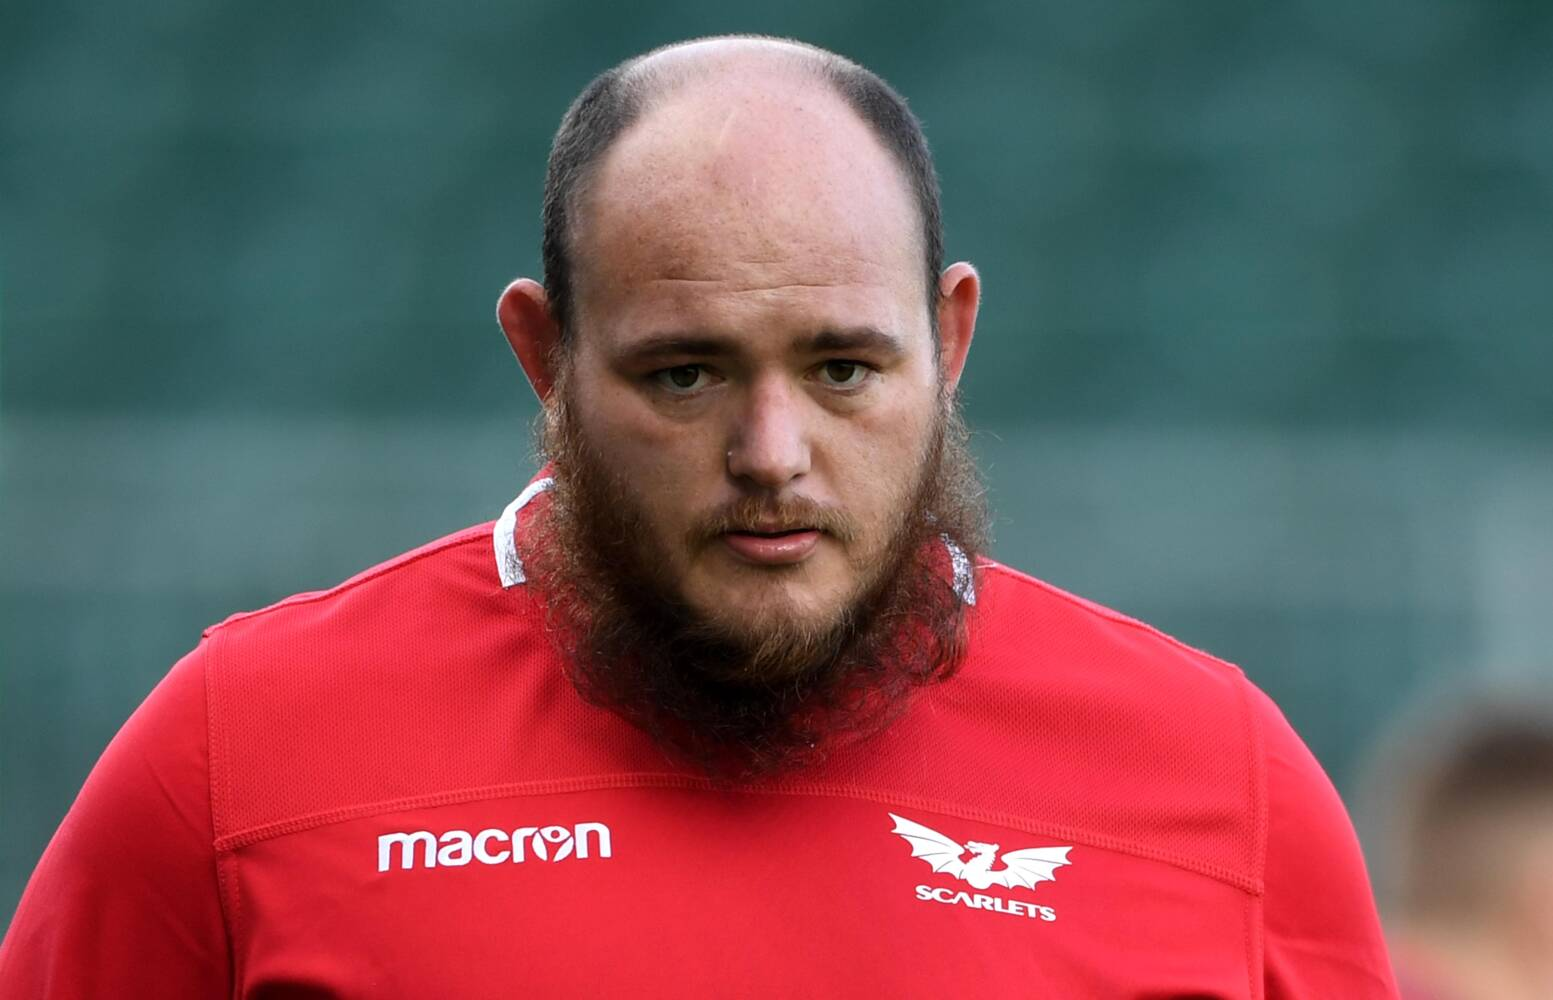 Welsh Rugby Union | Wales & Regions | Scholtz can't wait for first Scarlets  start